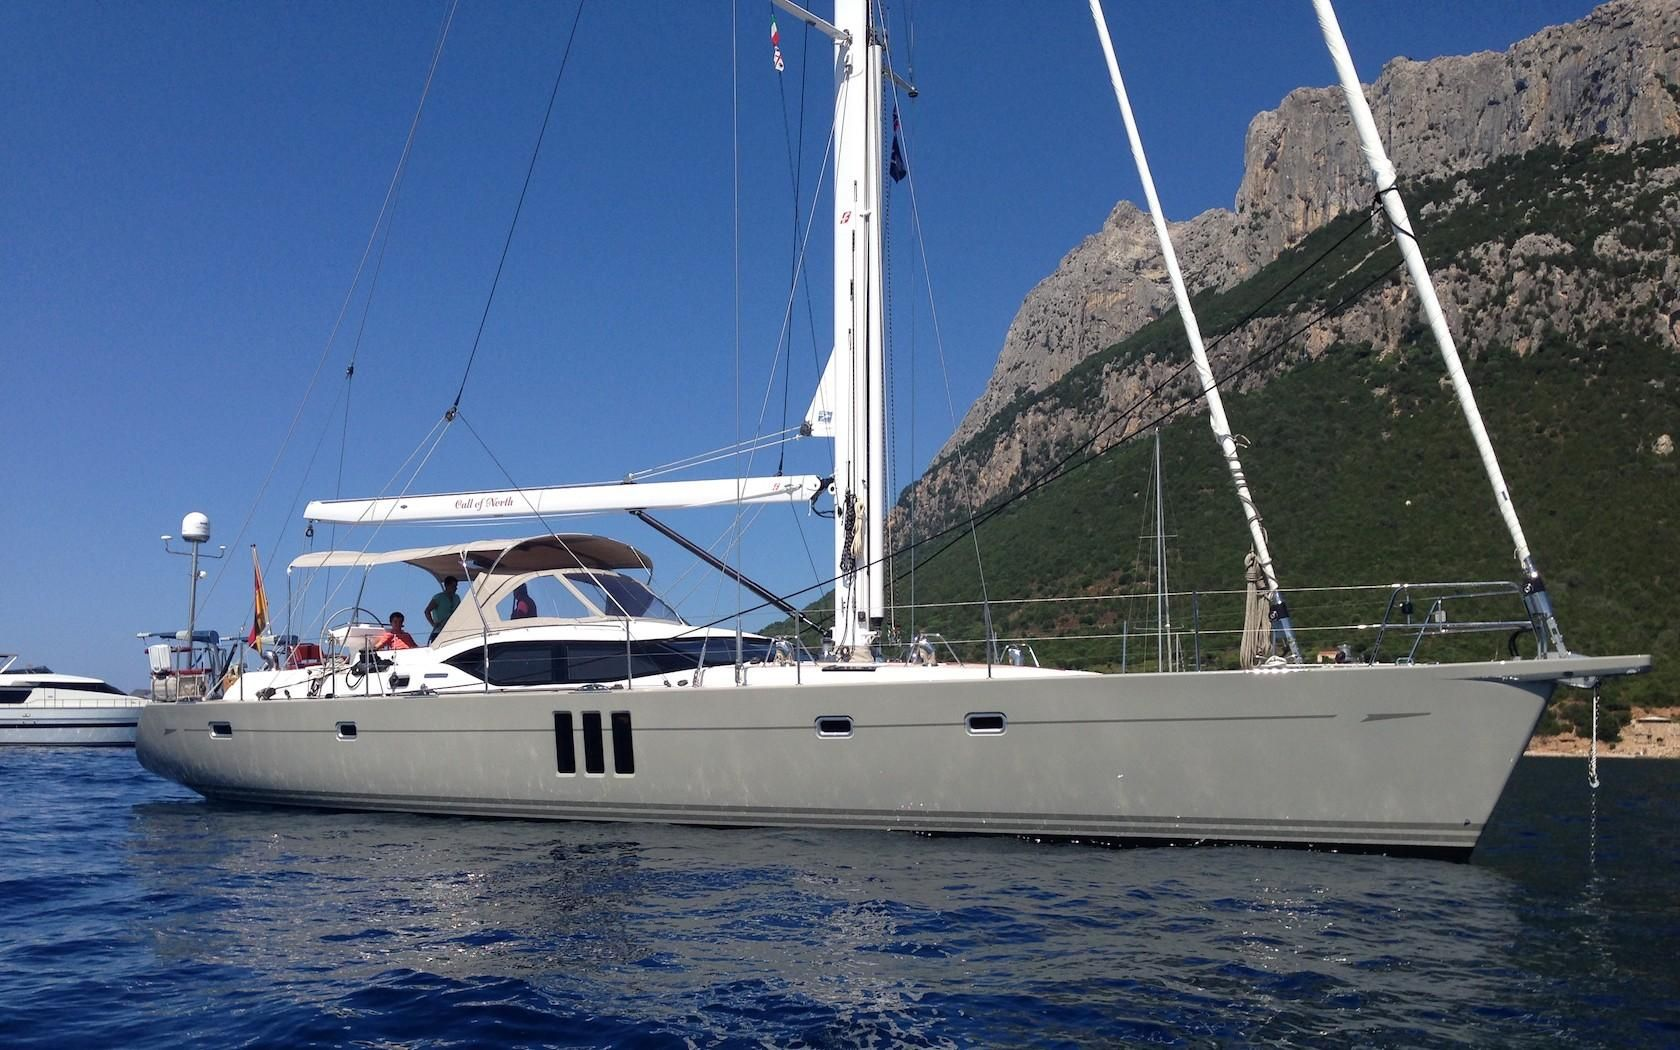 2014 Oyster 665 Sail Boat For Sale Details About Carling 5 Amp Single Switch Circuit Breaker